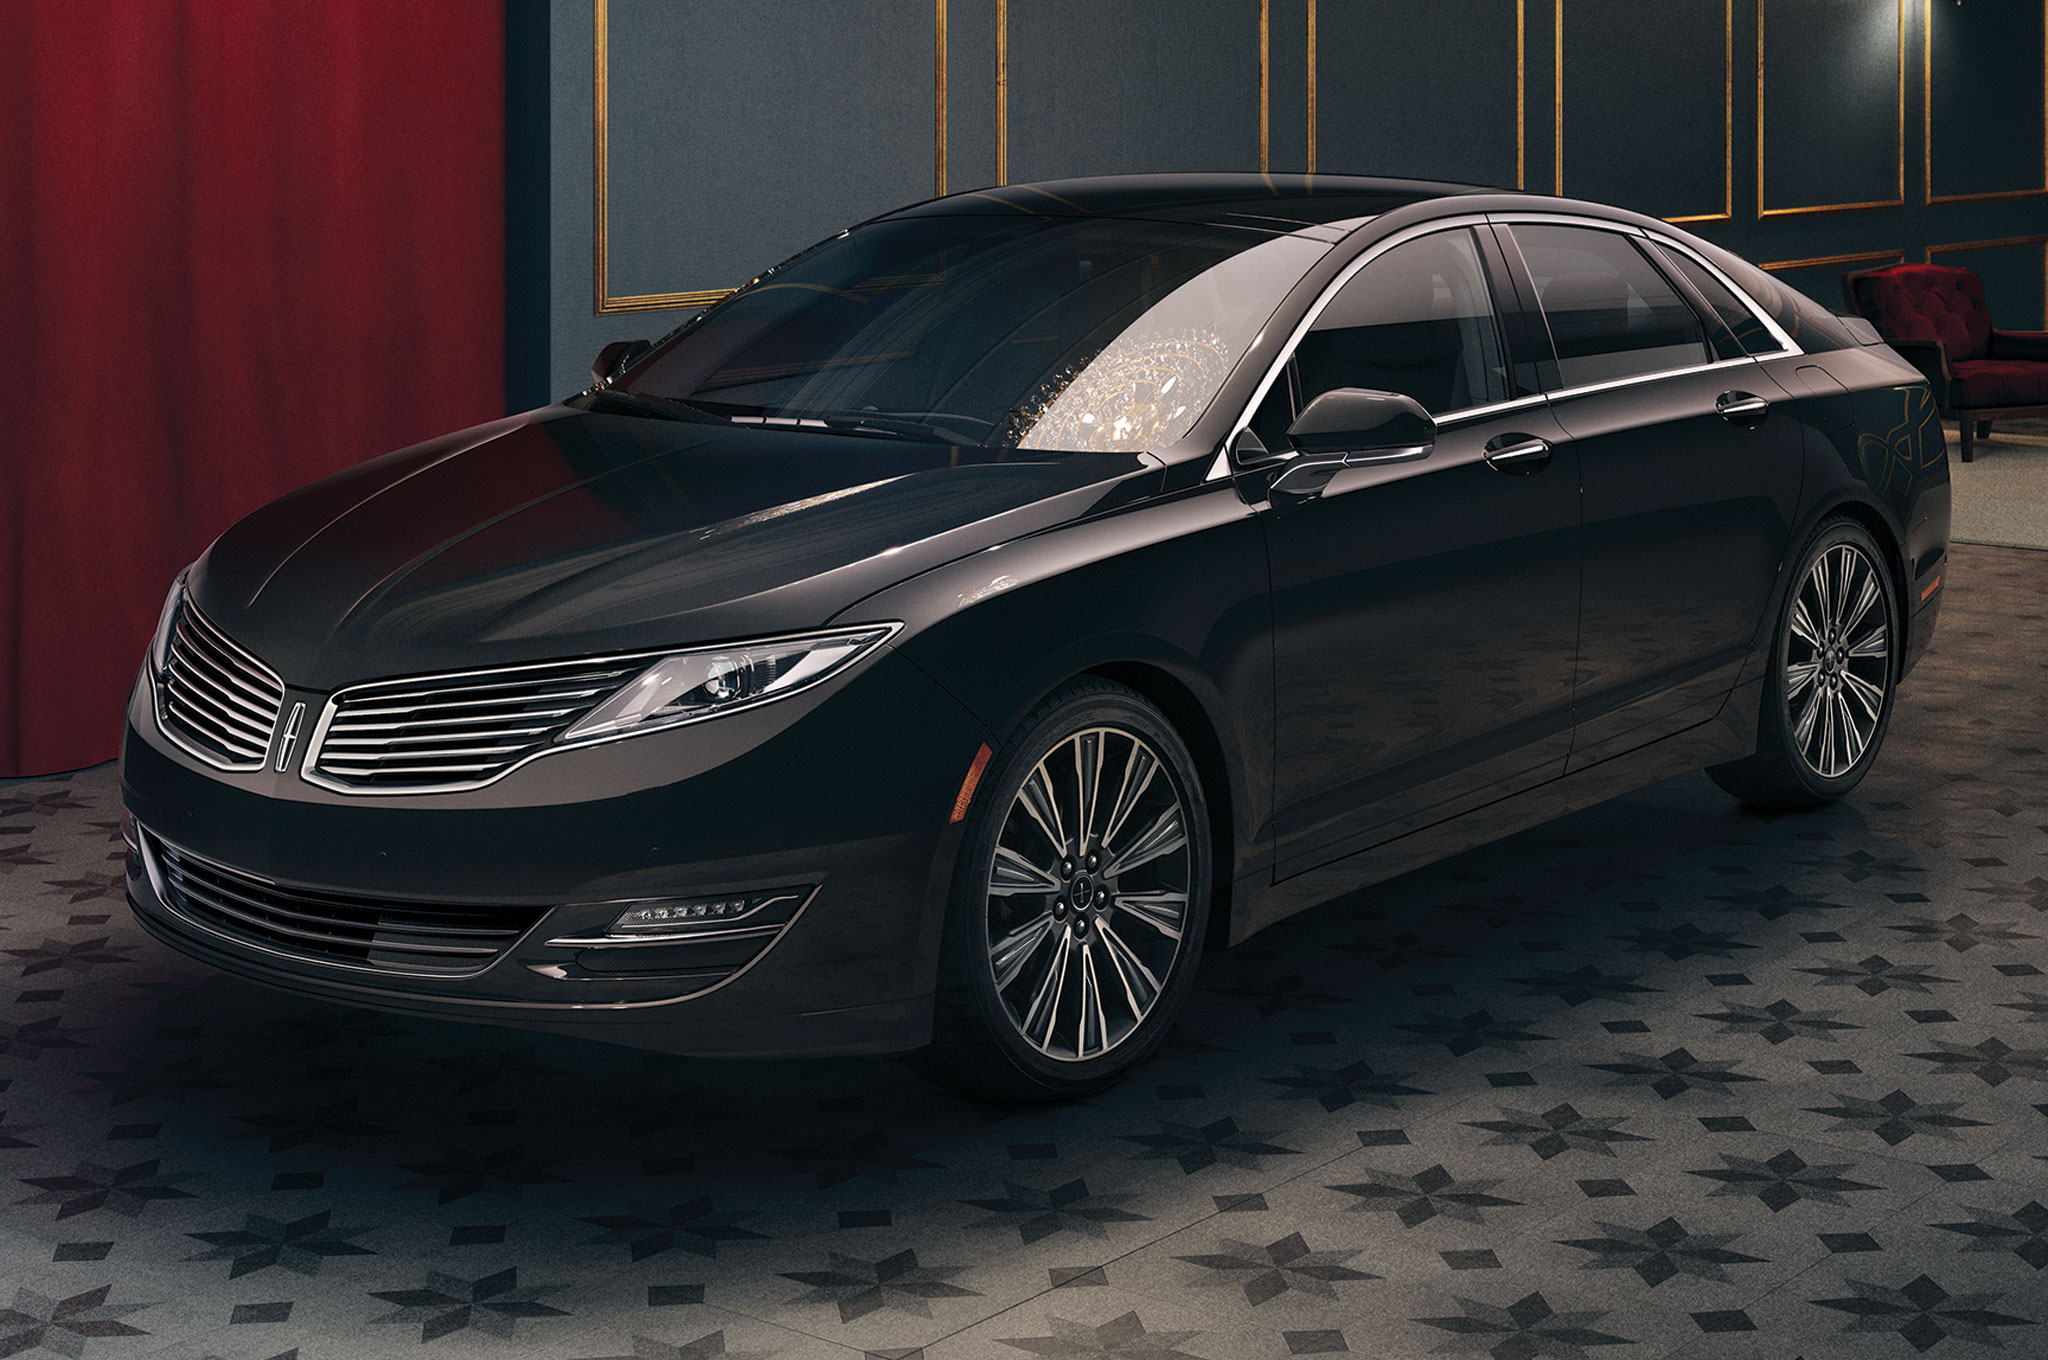 Research 2015                   Lincoln MKZ pictures, prices and reviews